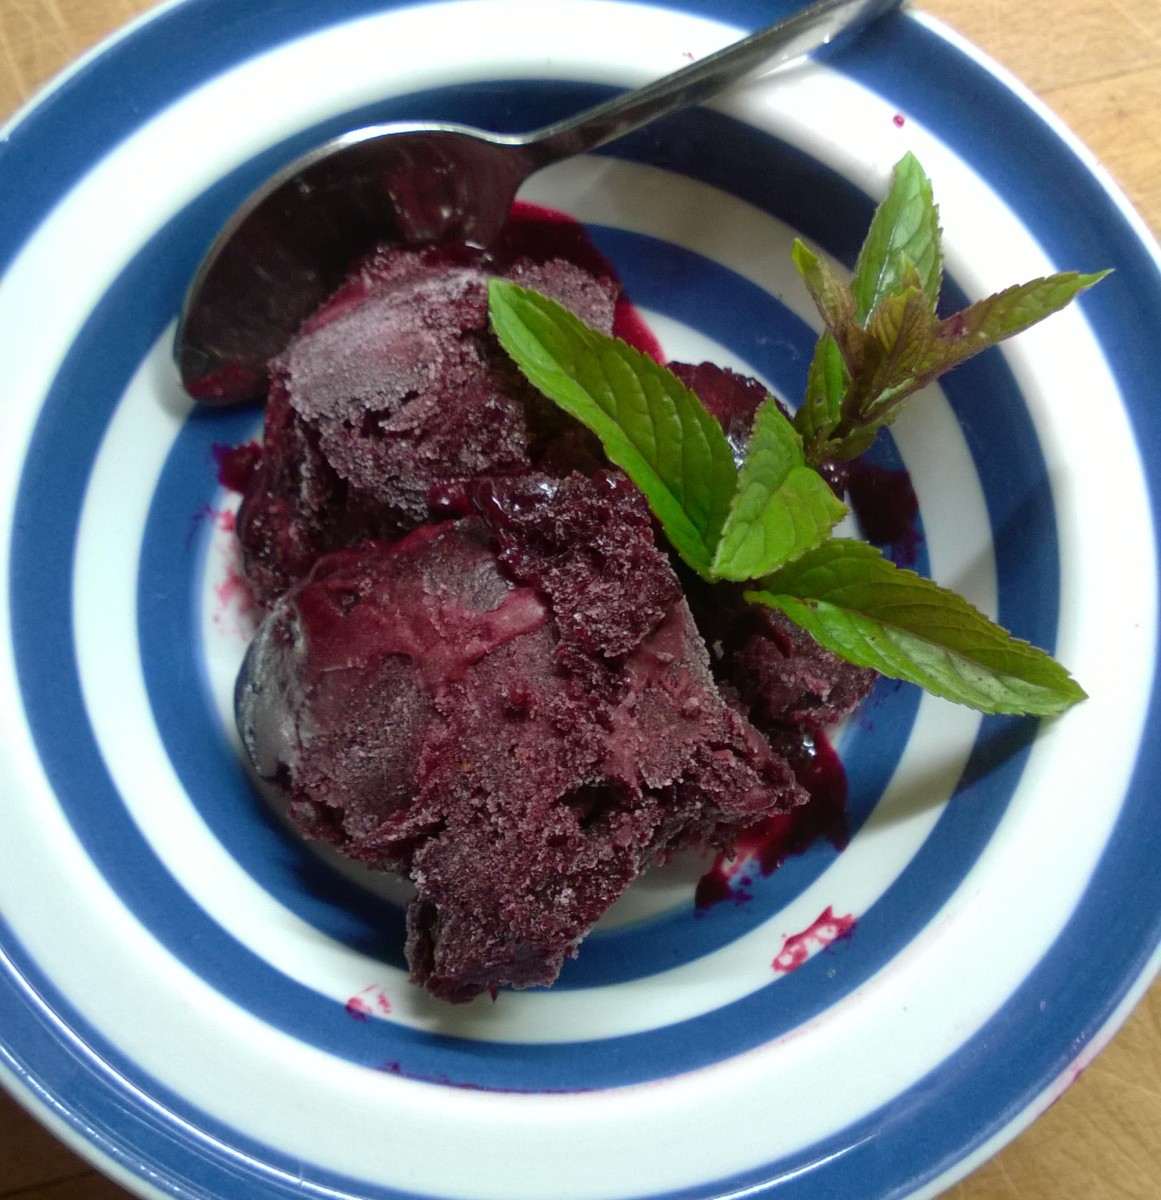 How to make blackcurrant sorbet: a recipe using fresh blackcurrants and peppermint